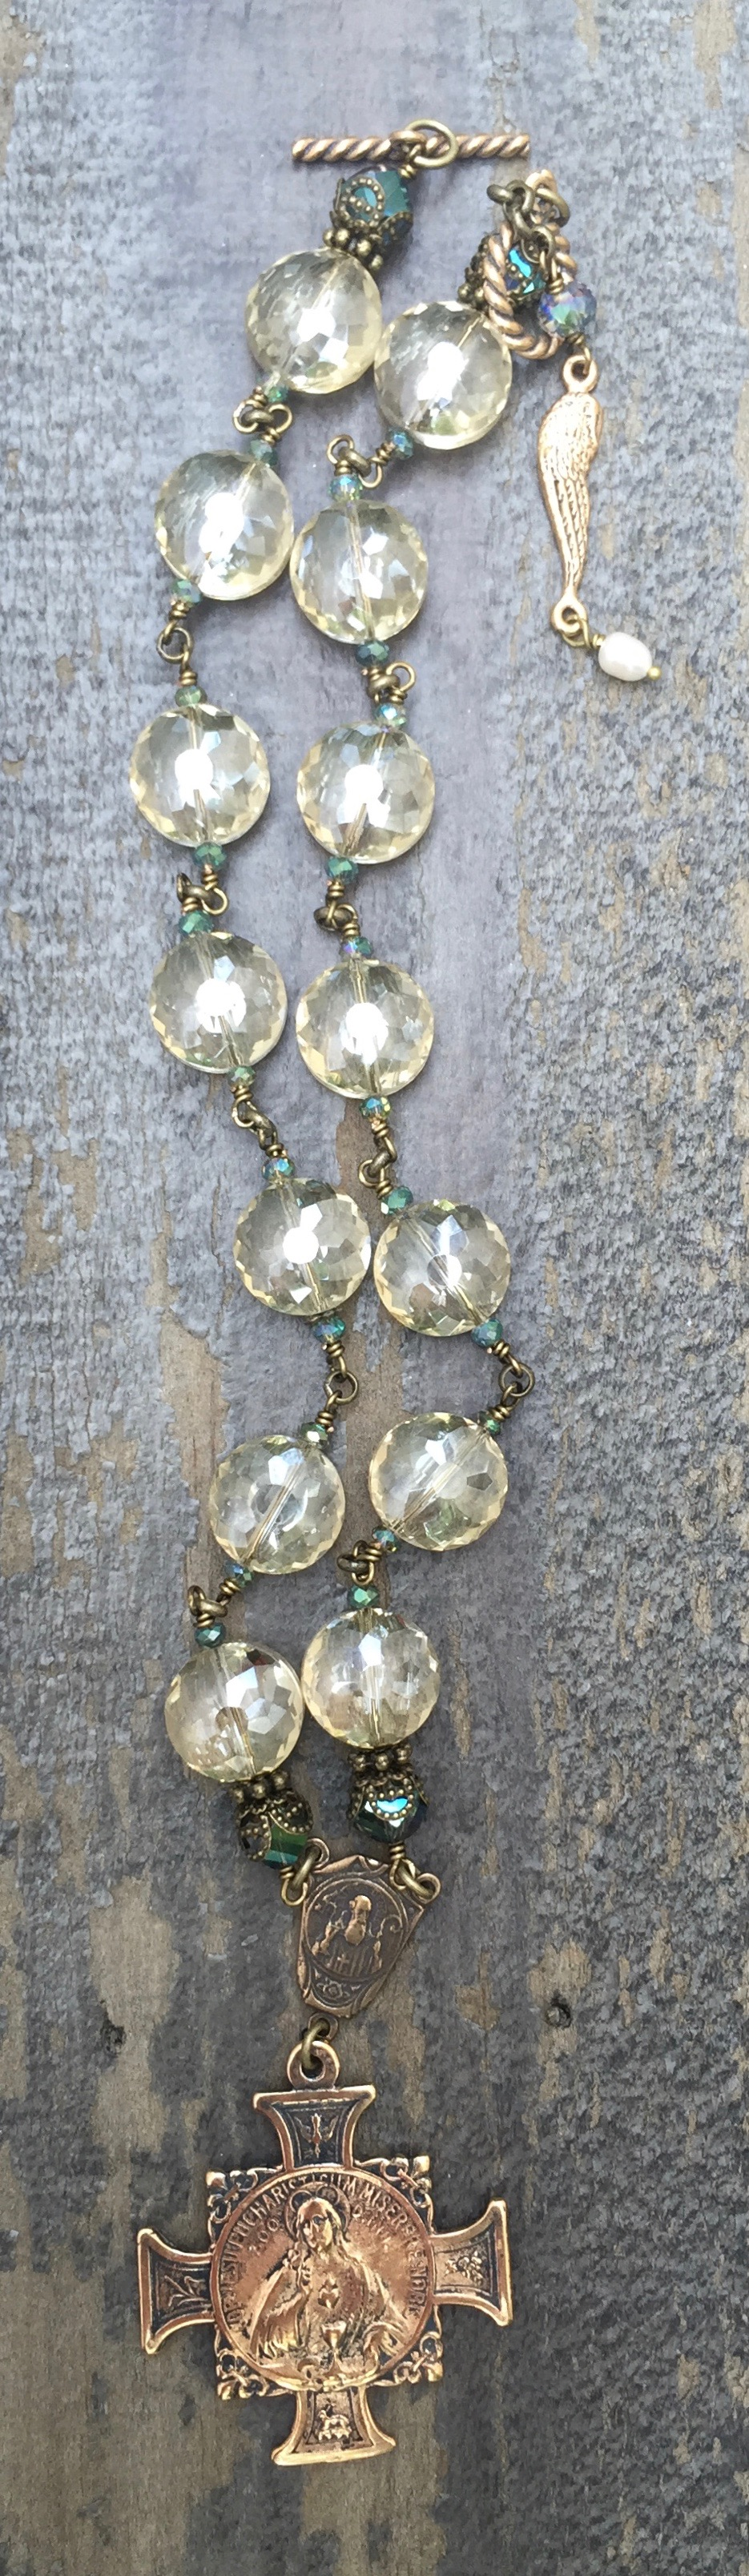 Champagne and Aqua Crystal Necklace – 12mm